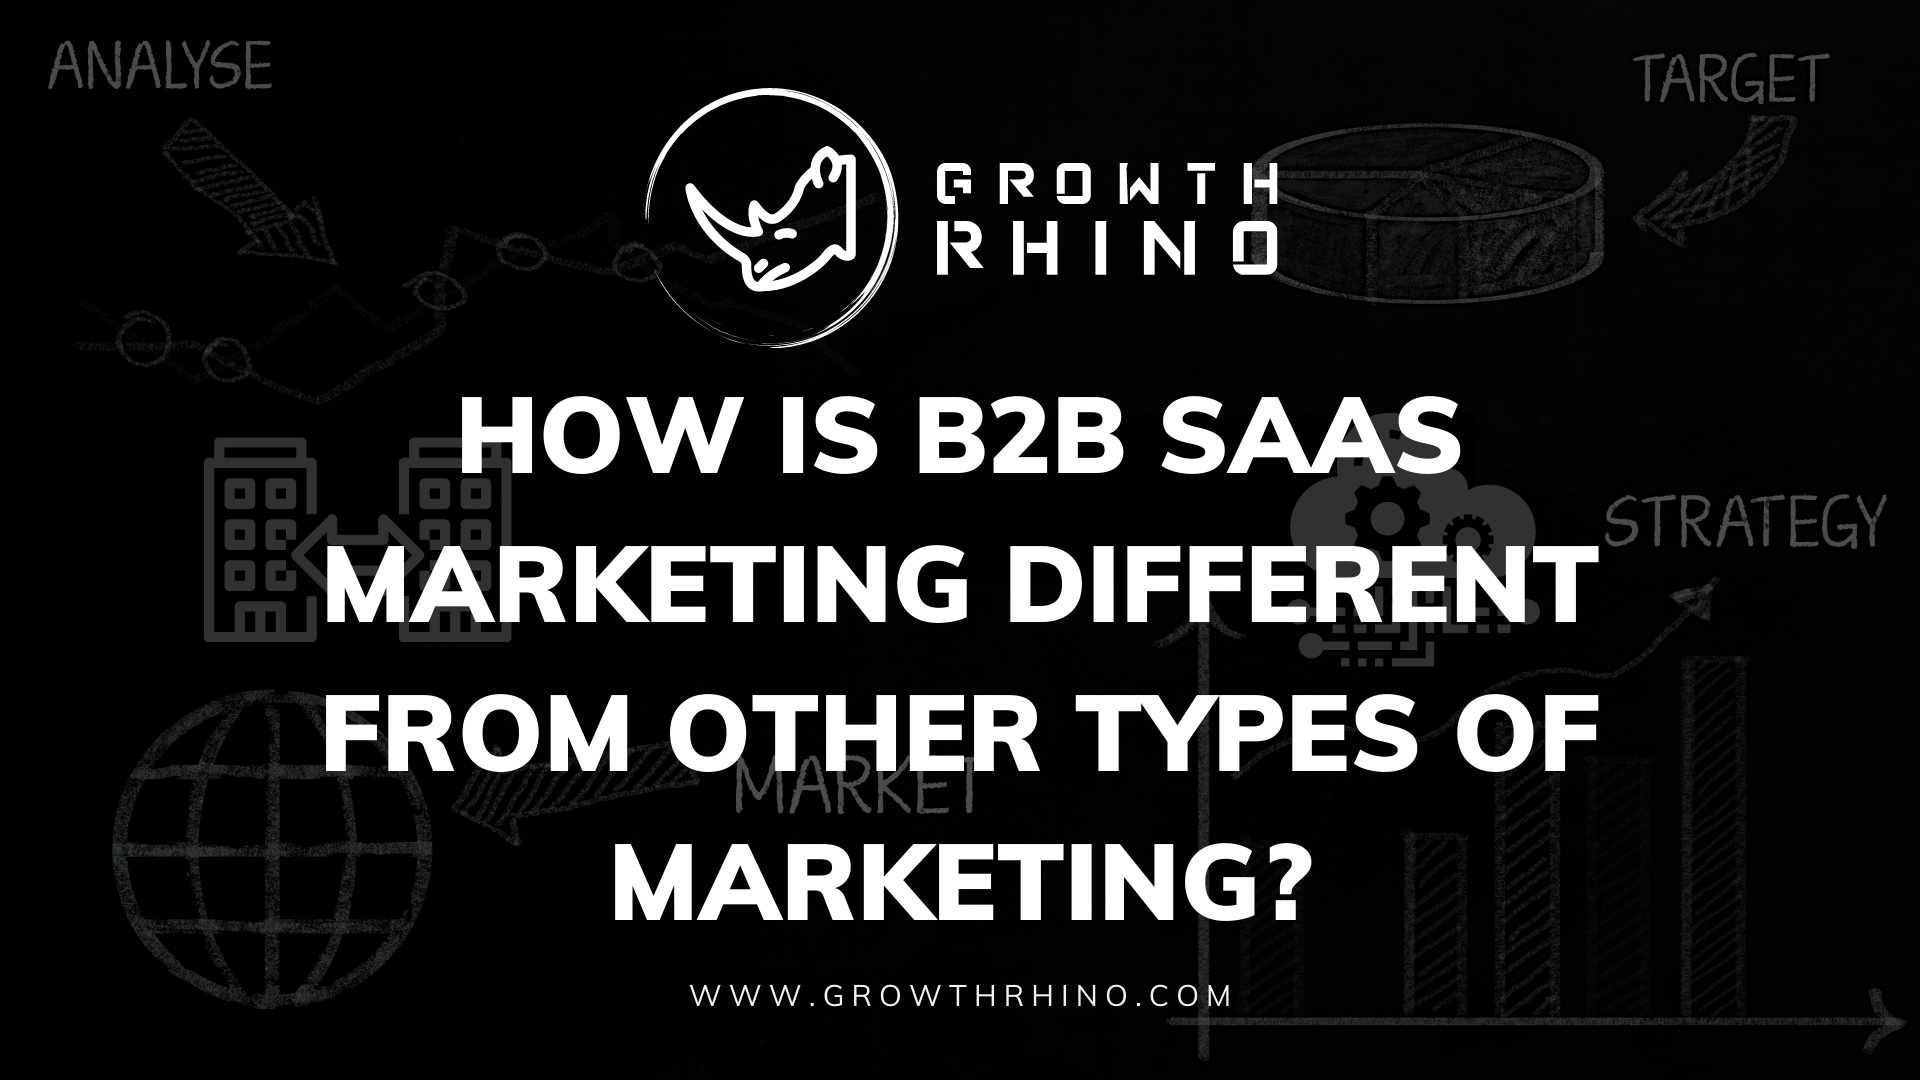 How Is B2B SaaS Marketing Different from Other Types of Marketing?